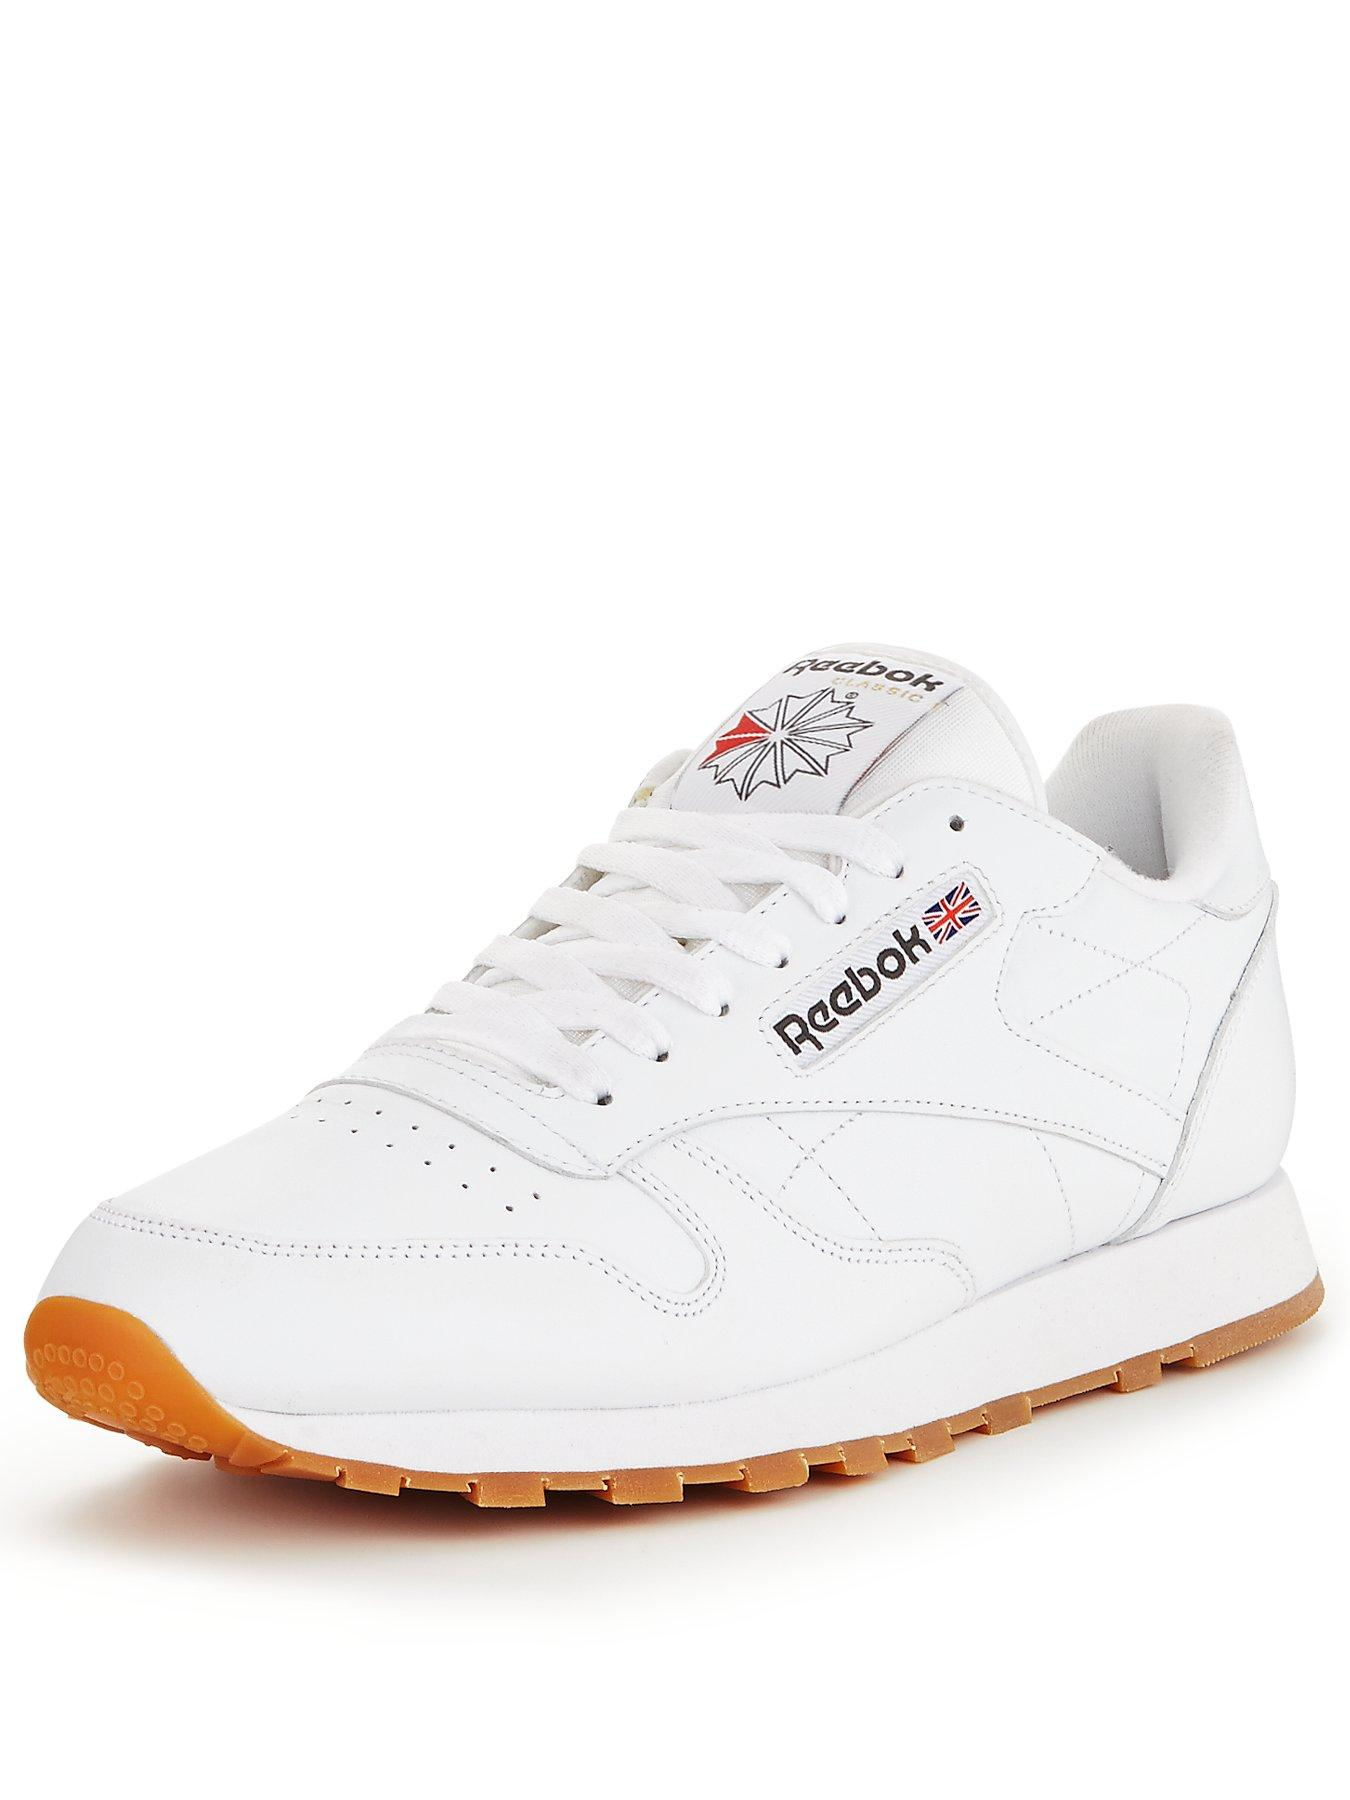 mens white reebok trainers